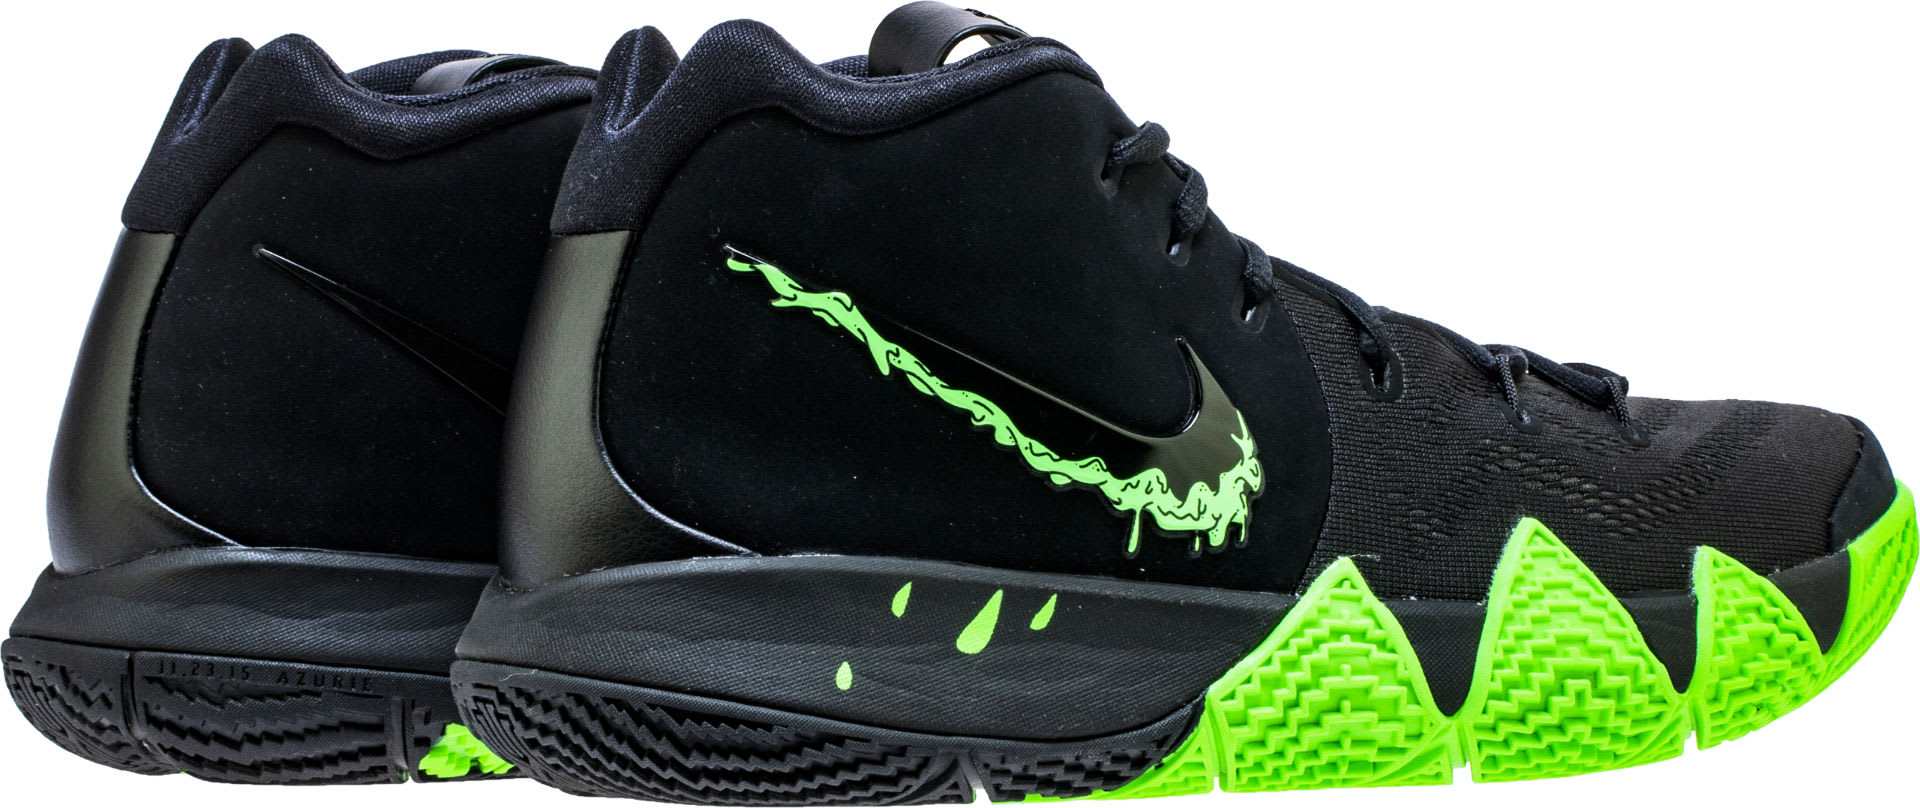 hot sale online 14117 a3c5e Image via Shoe Palace Nike Kyrie 4 Black Rage Green Halloween Release Date  943806-012 Back